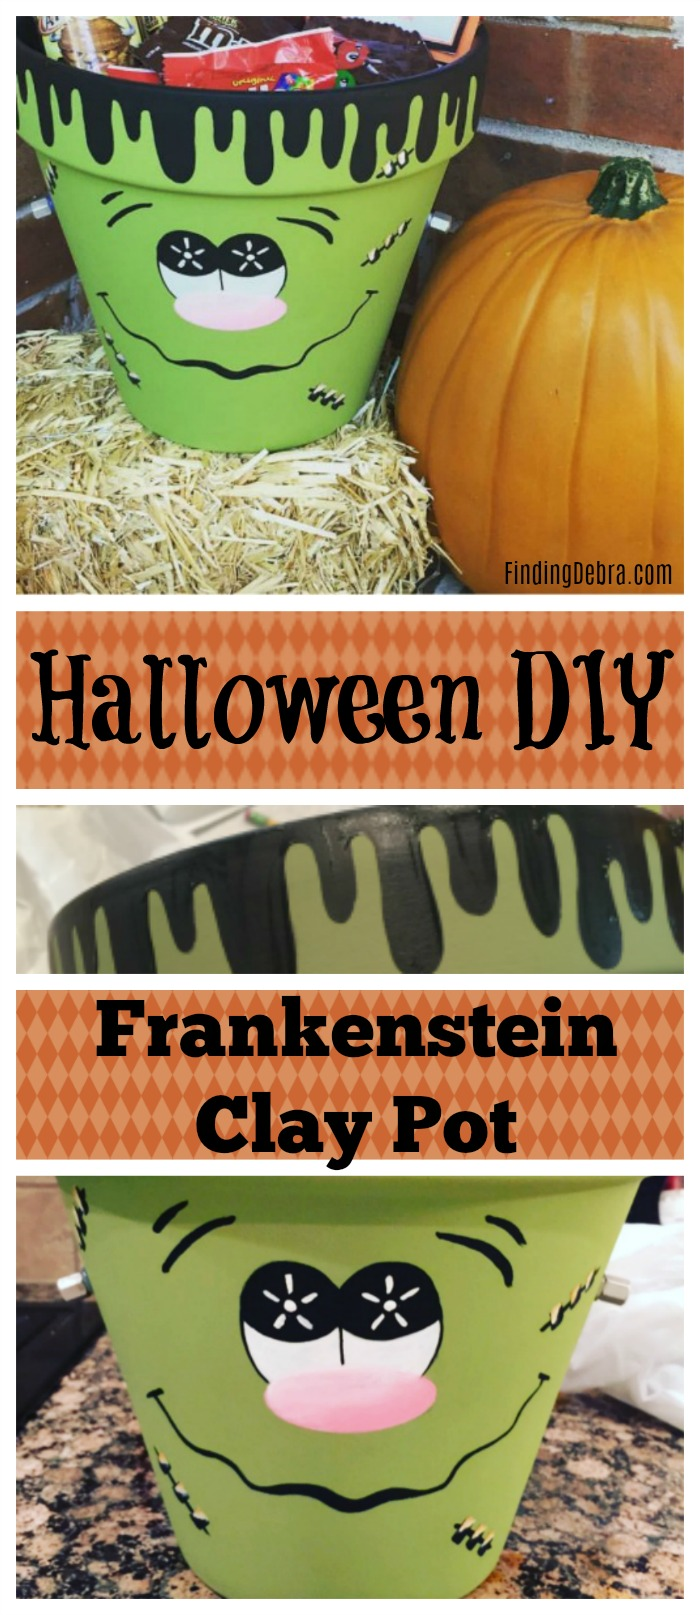 Halloween DIY Frankenstein Clay Pot For Treats